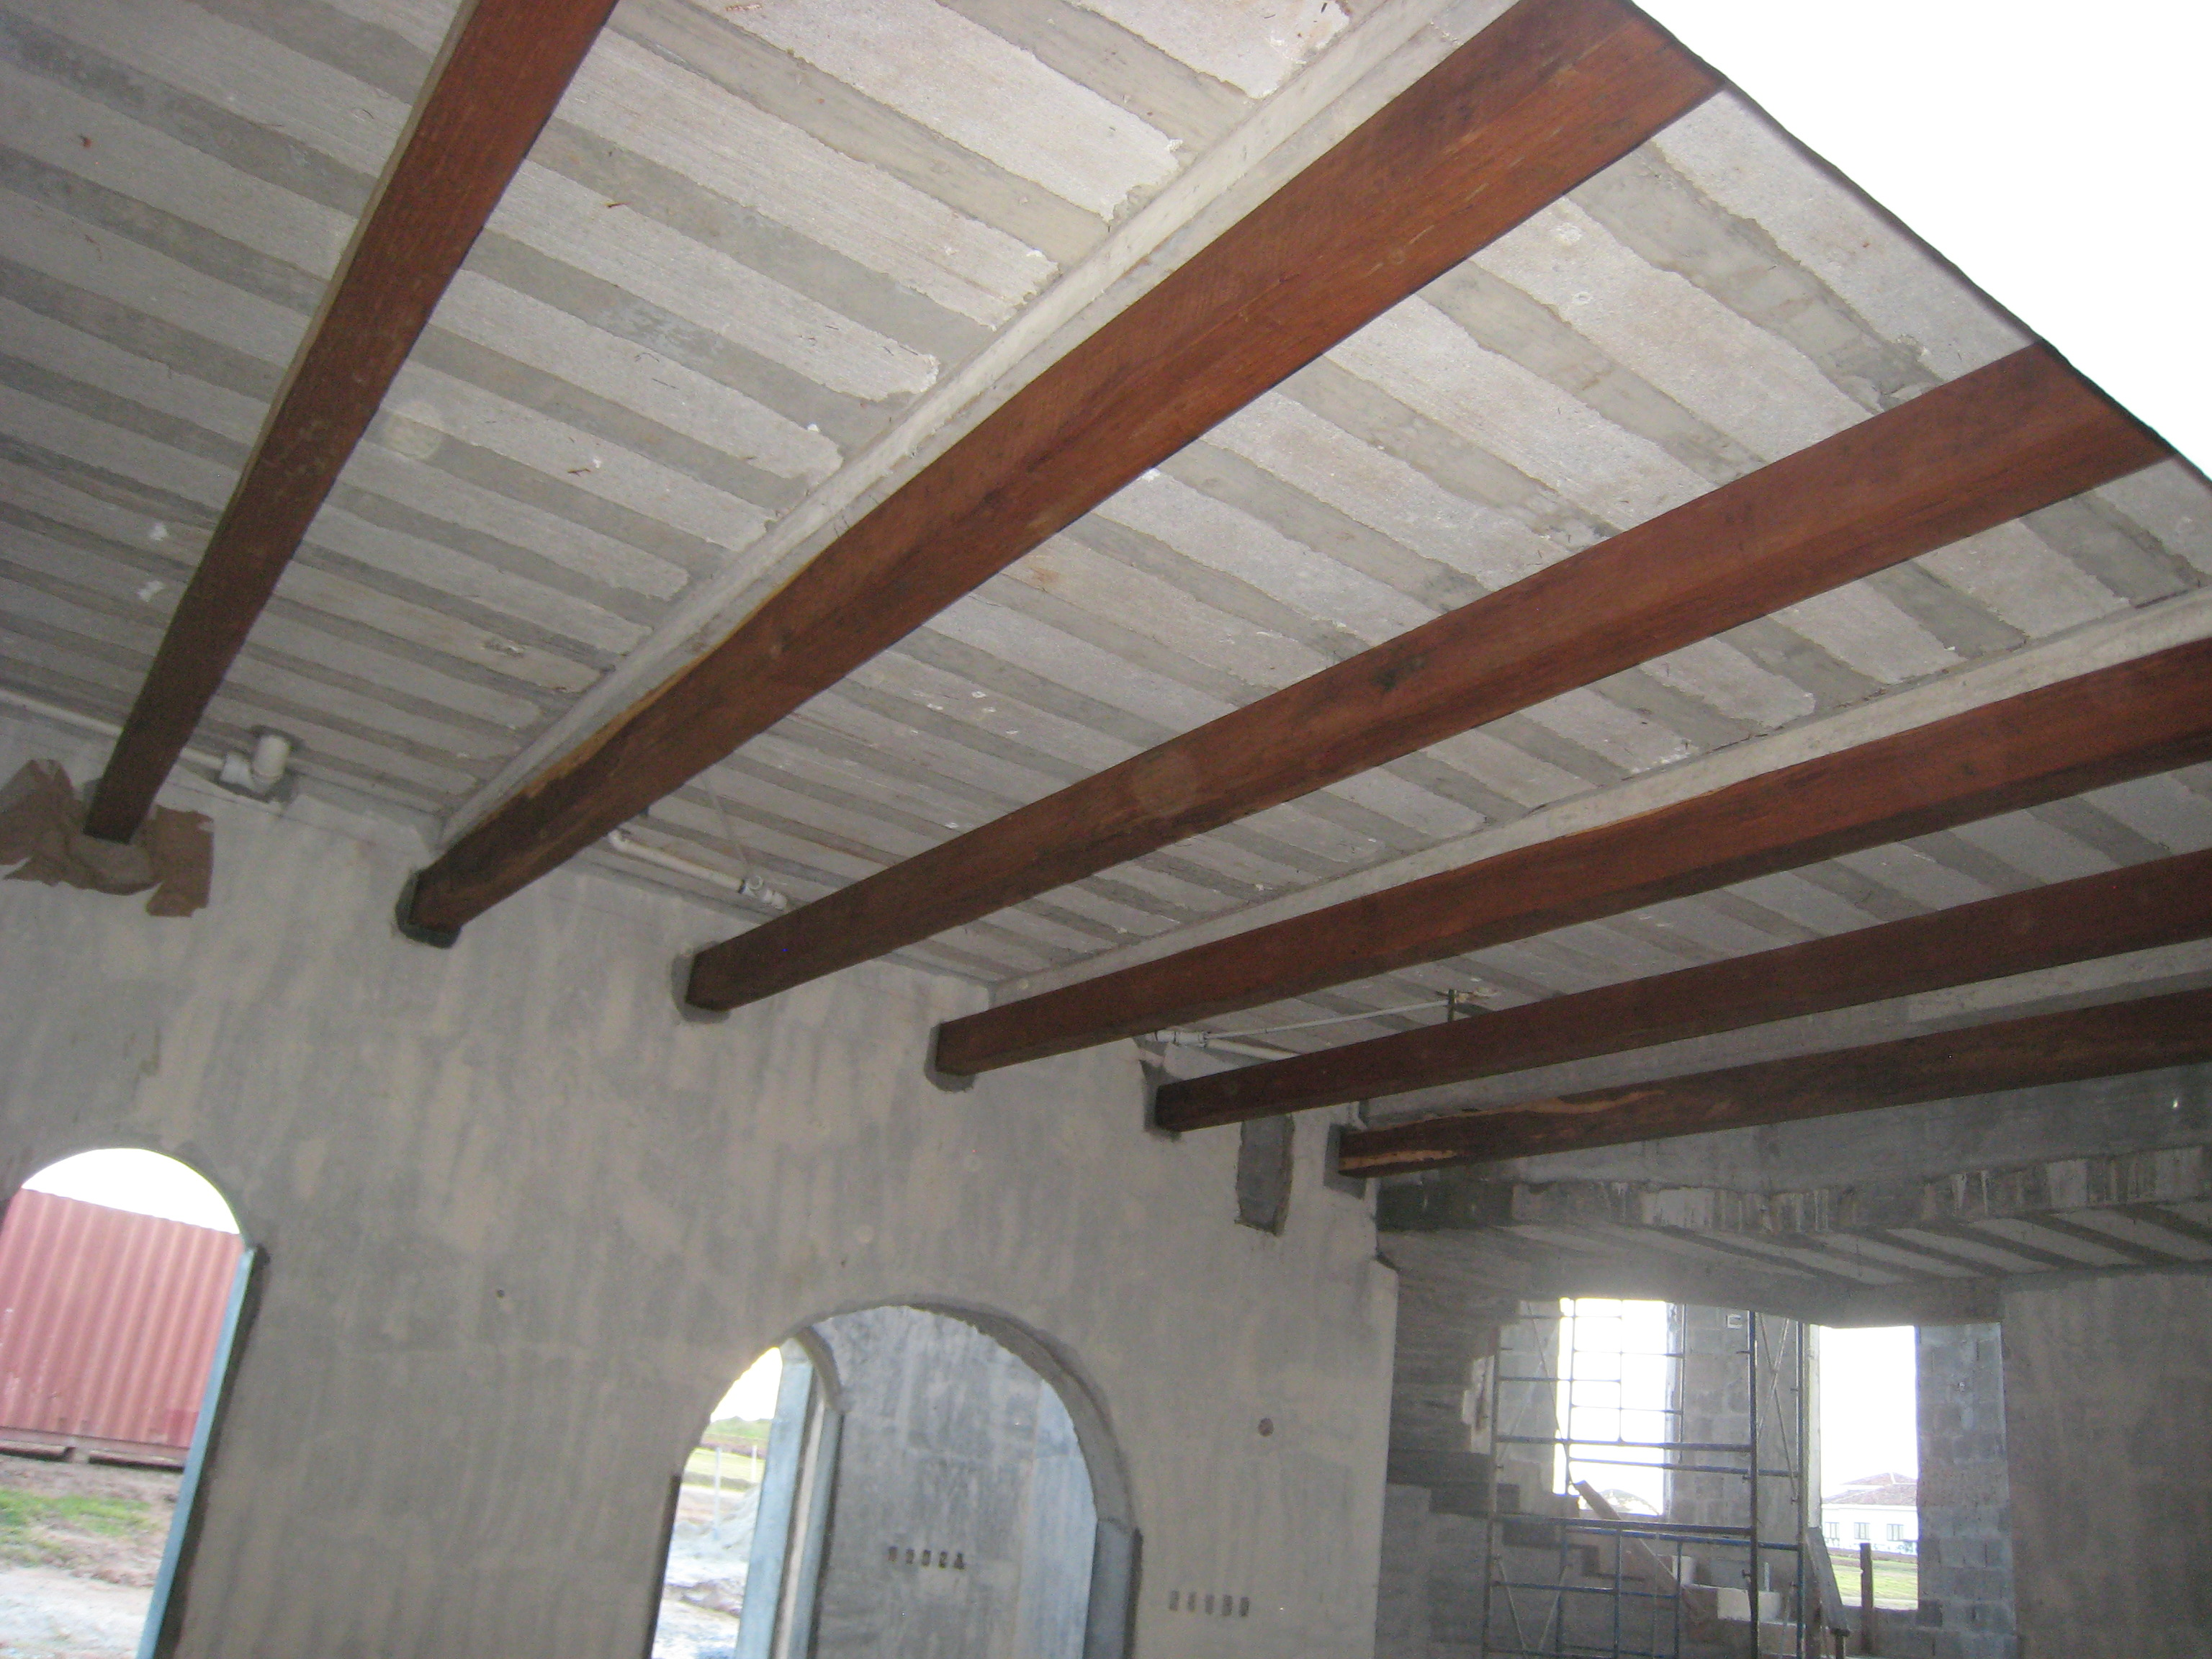 The Large Wooden Ceiling Beams Have Been Installed In Livingroom And On Top Of Tower While Solid Hardwood Heavy